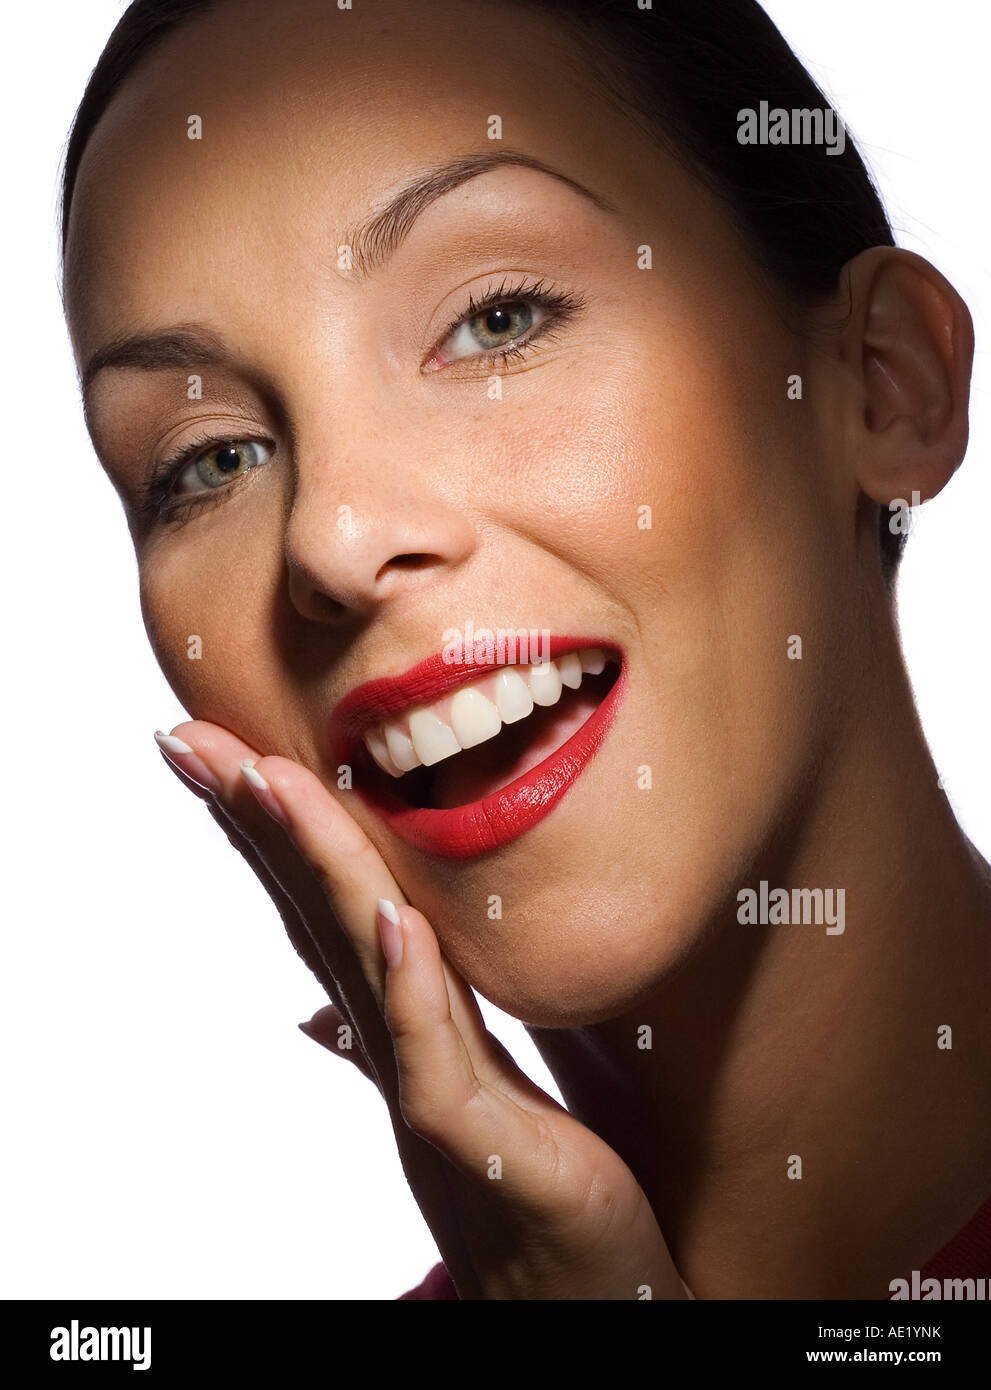 A young woman smiling with her hand up to her cheek. - Stock Image